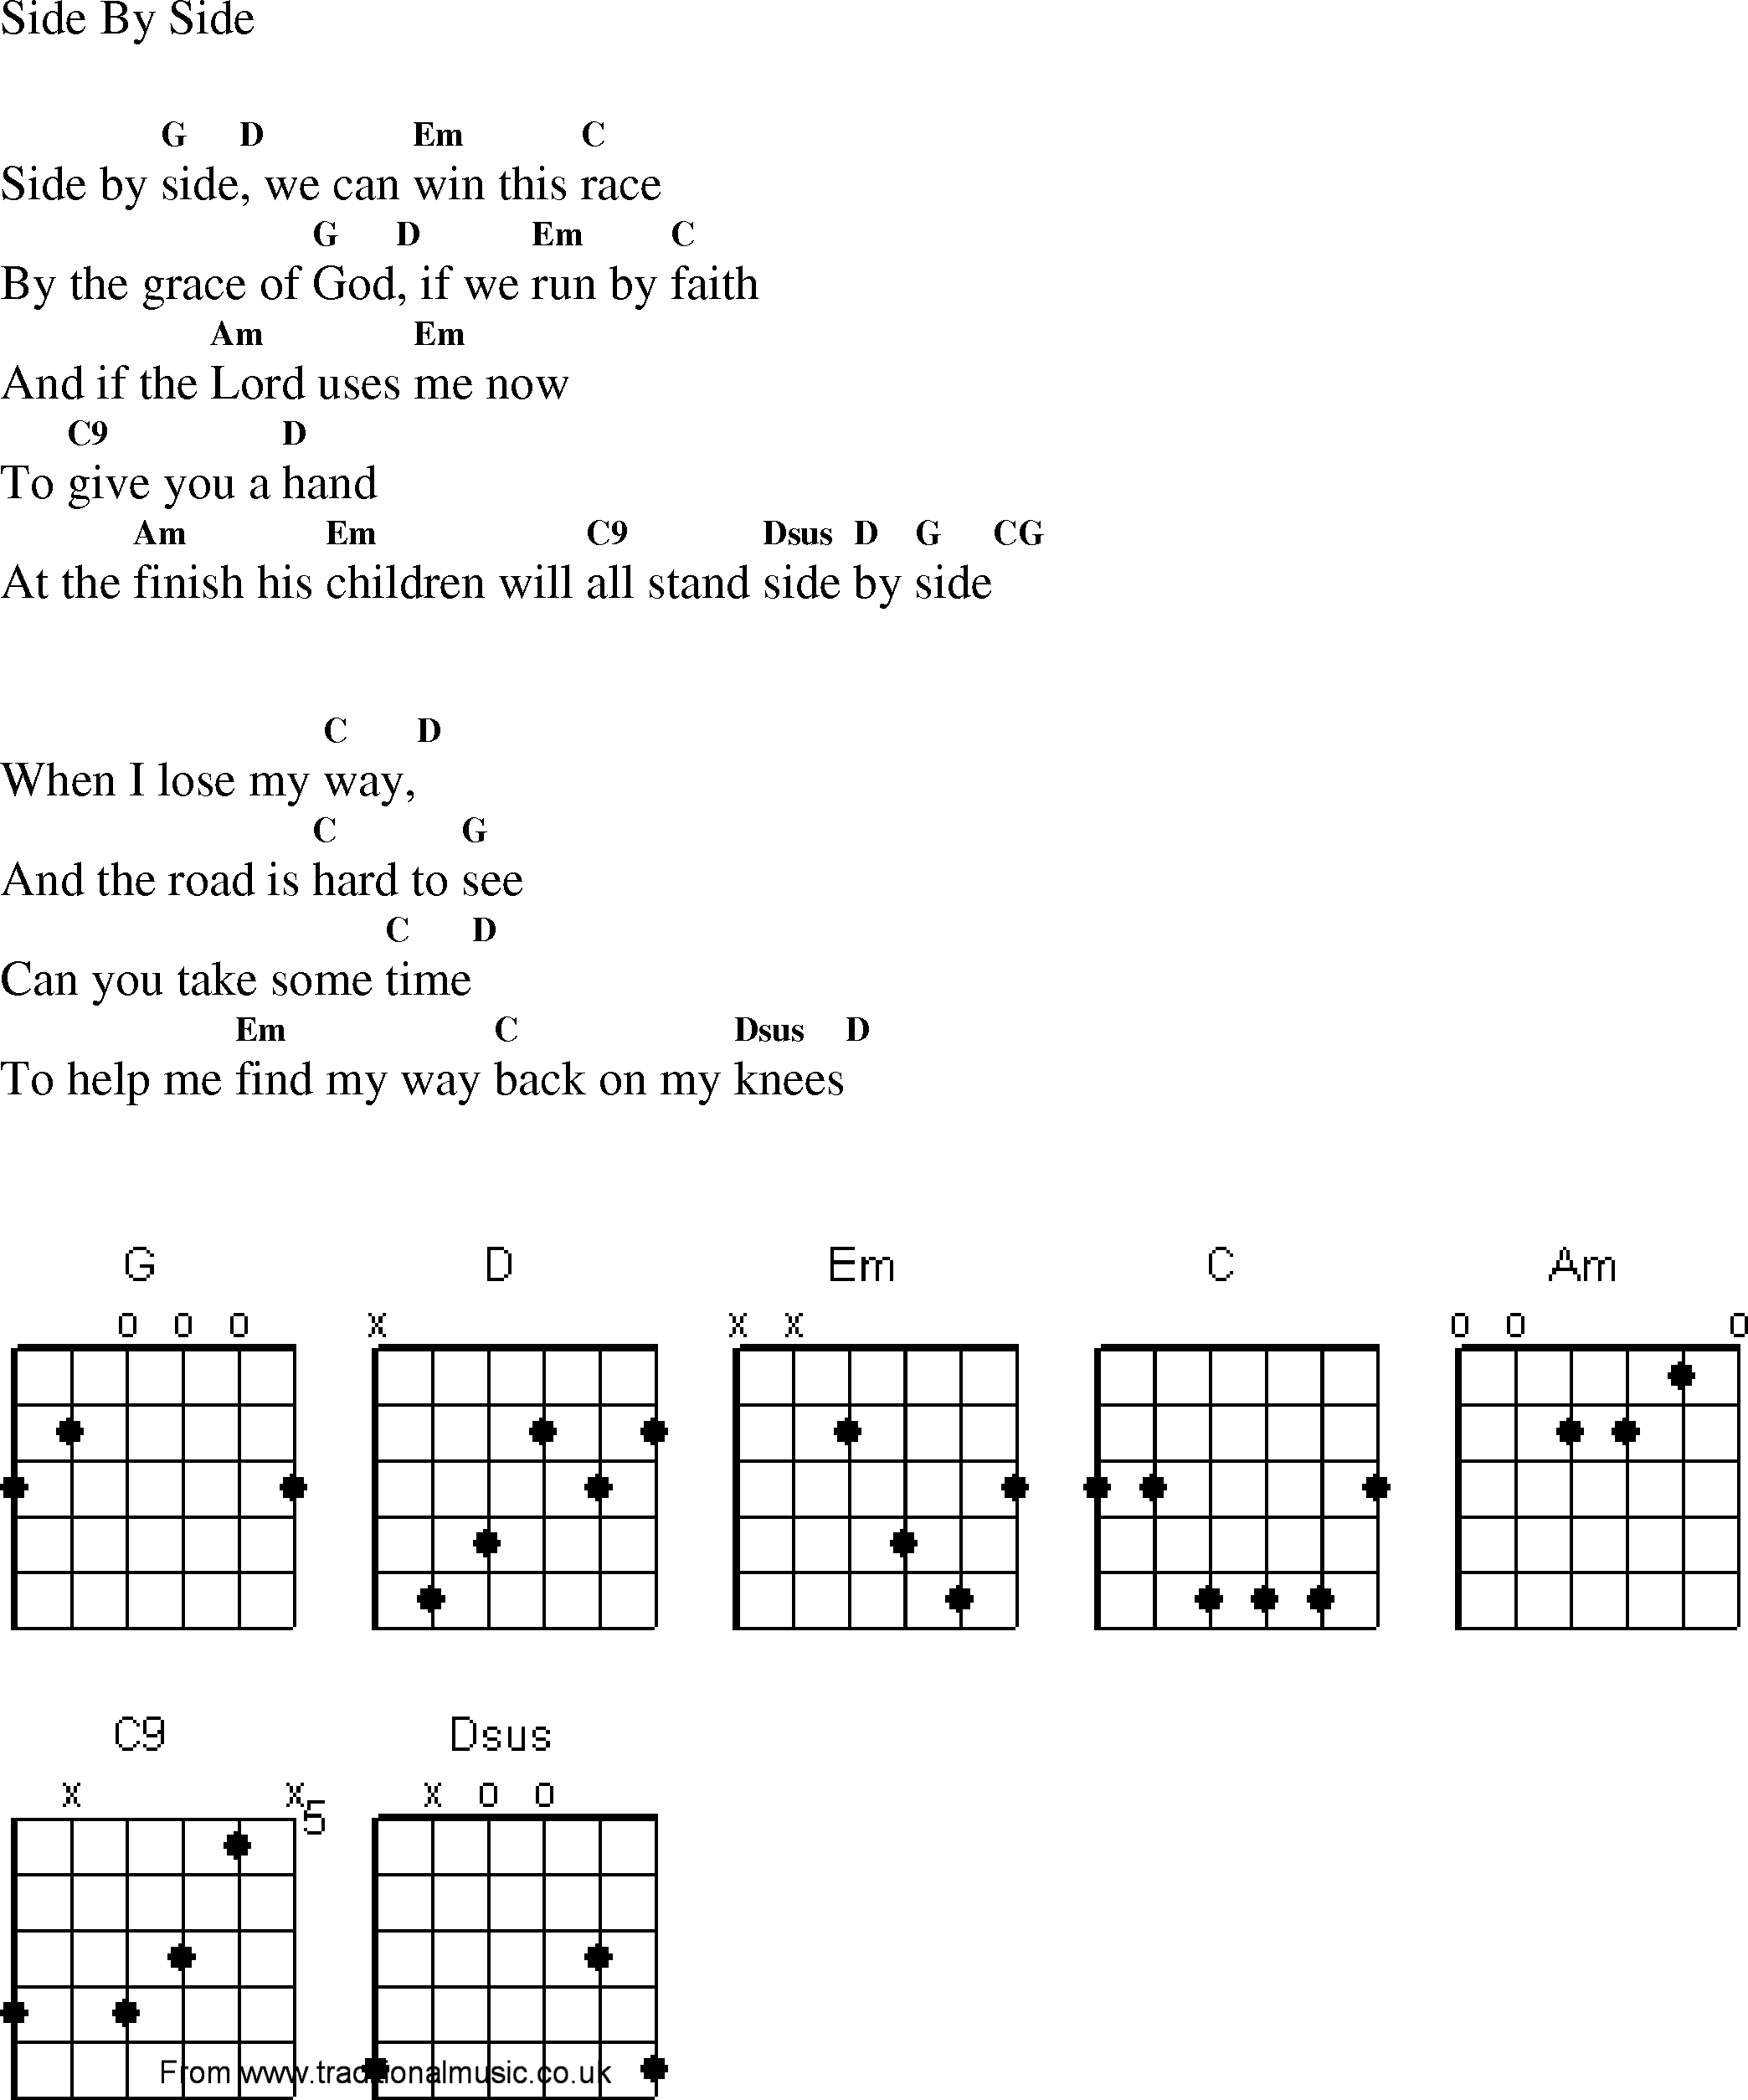 Christian Gospel Worship Song Lyrics with Chords - Side By Side